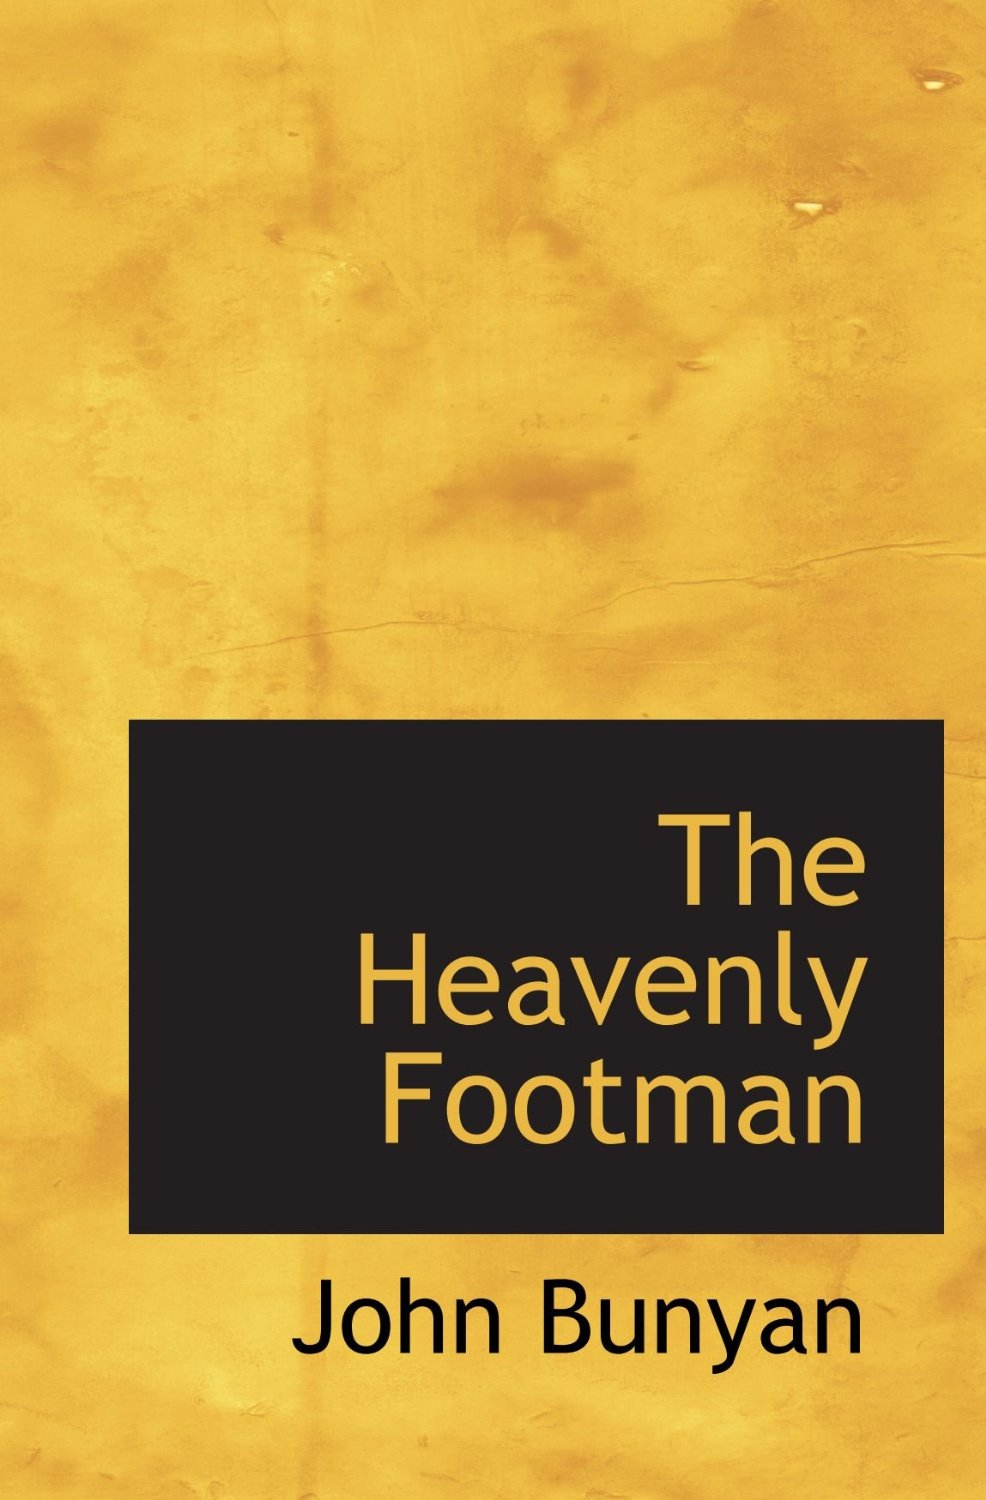 John Bunyan-The Heavenly Footman-